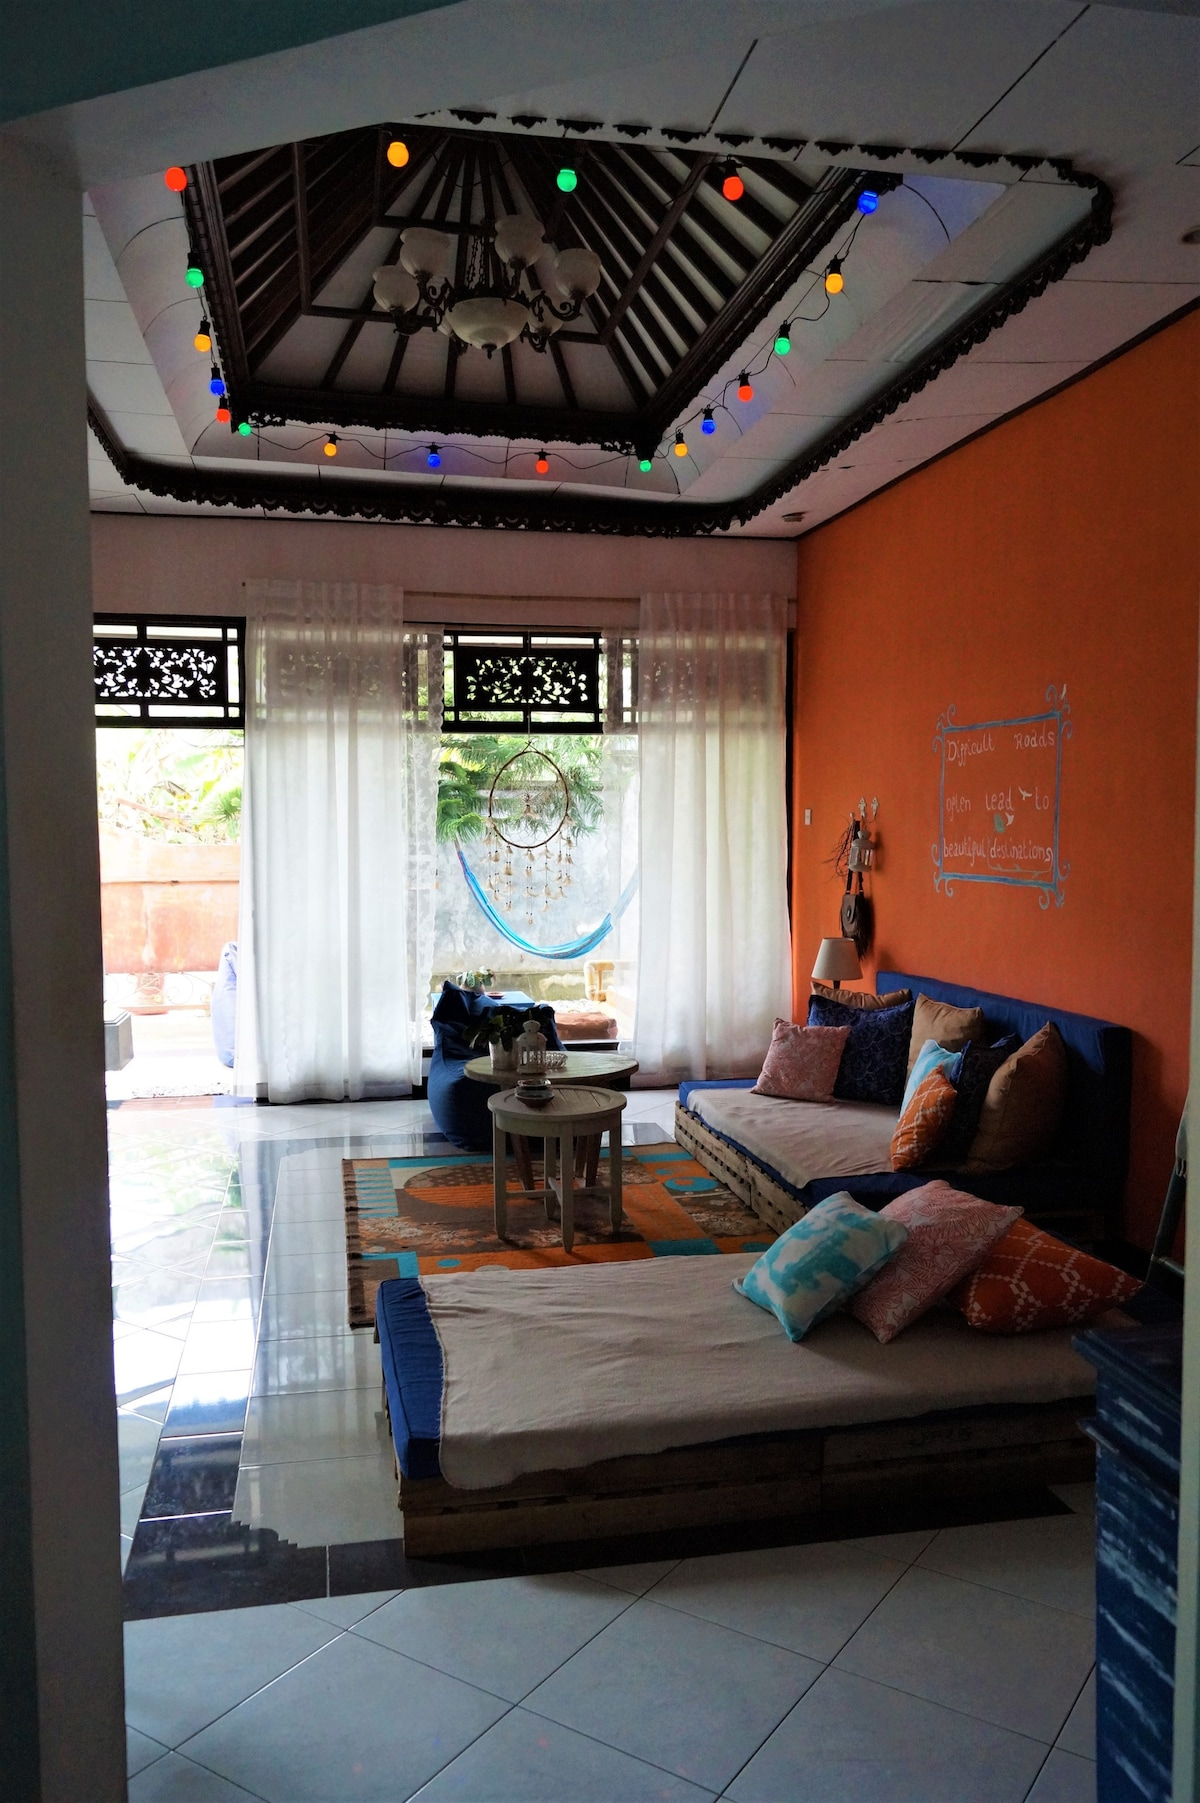 Jl. Pantai Berawa Br Pelambingan No 37 2018 (with Photos): Top 20 Jl.  Pantai Berawa Br Pelambingan No 37 Vacation Rentals, Vacation Homes U0026 Condo  Rentals ...